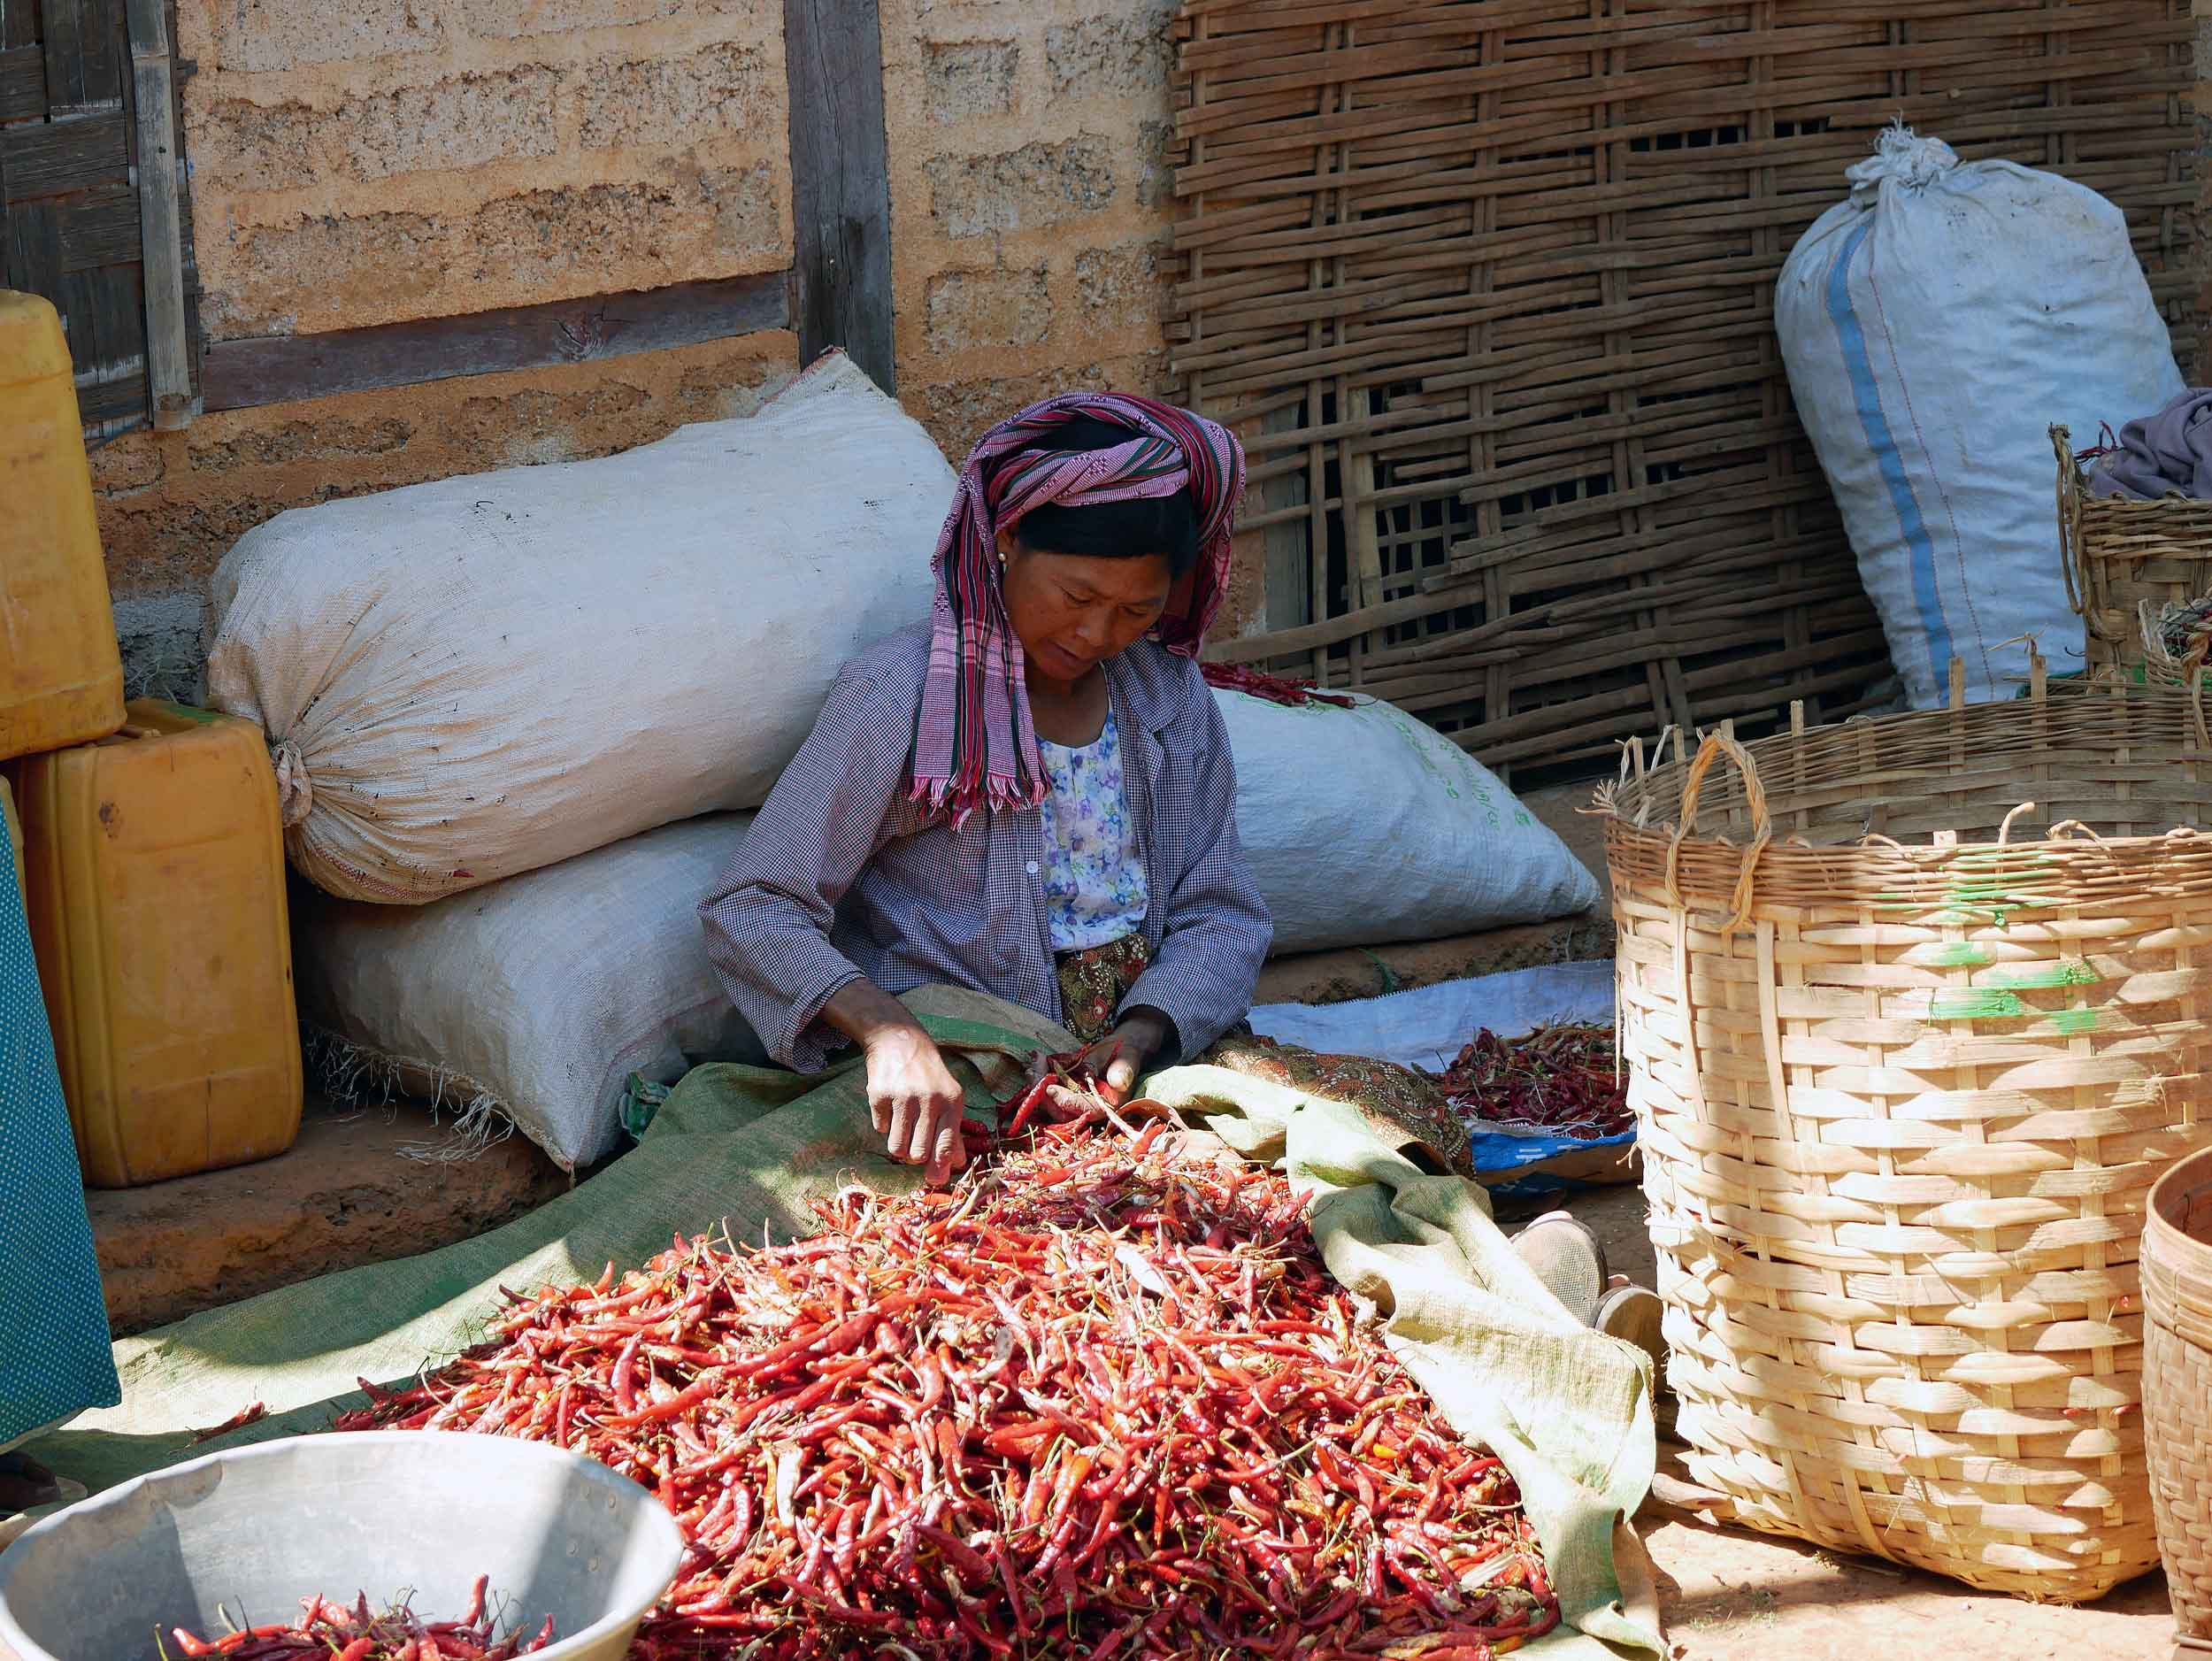 As we ate lunch in Kone-hla village, women sorted red chiles for market (Feb 20).